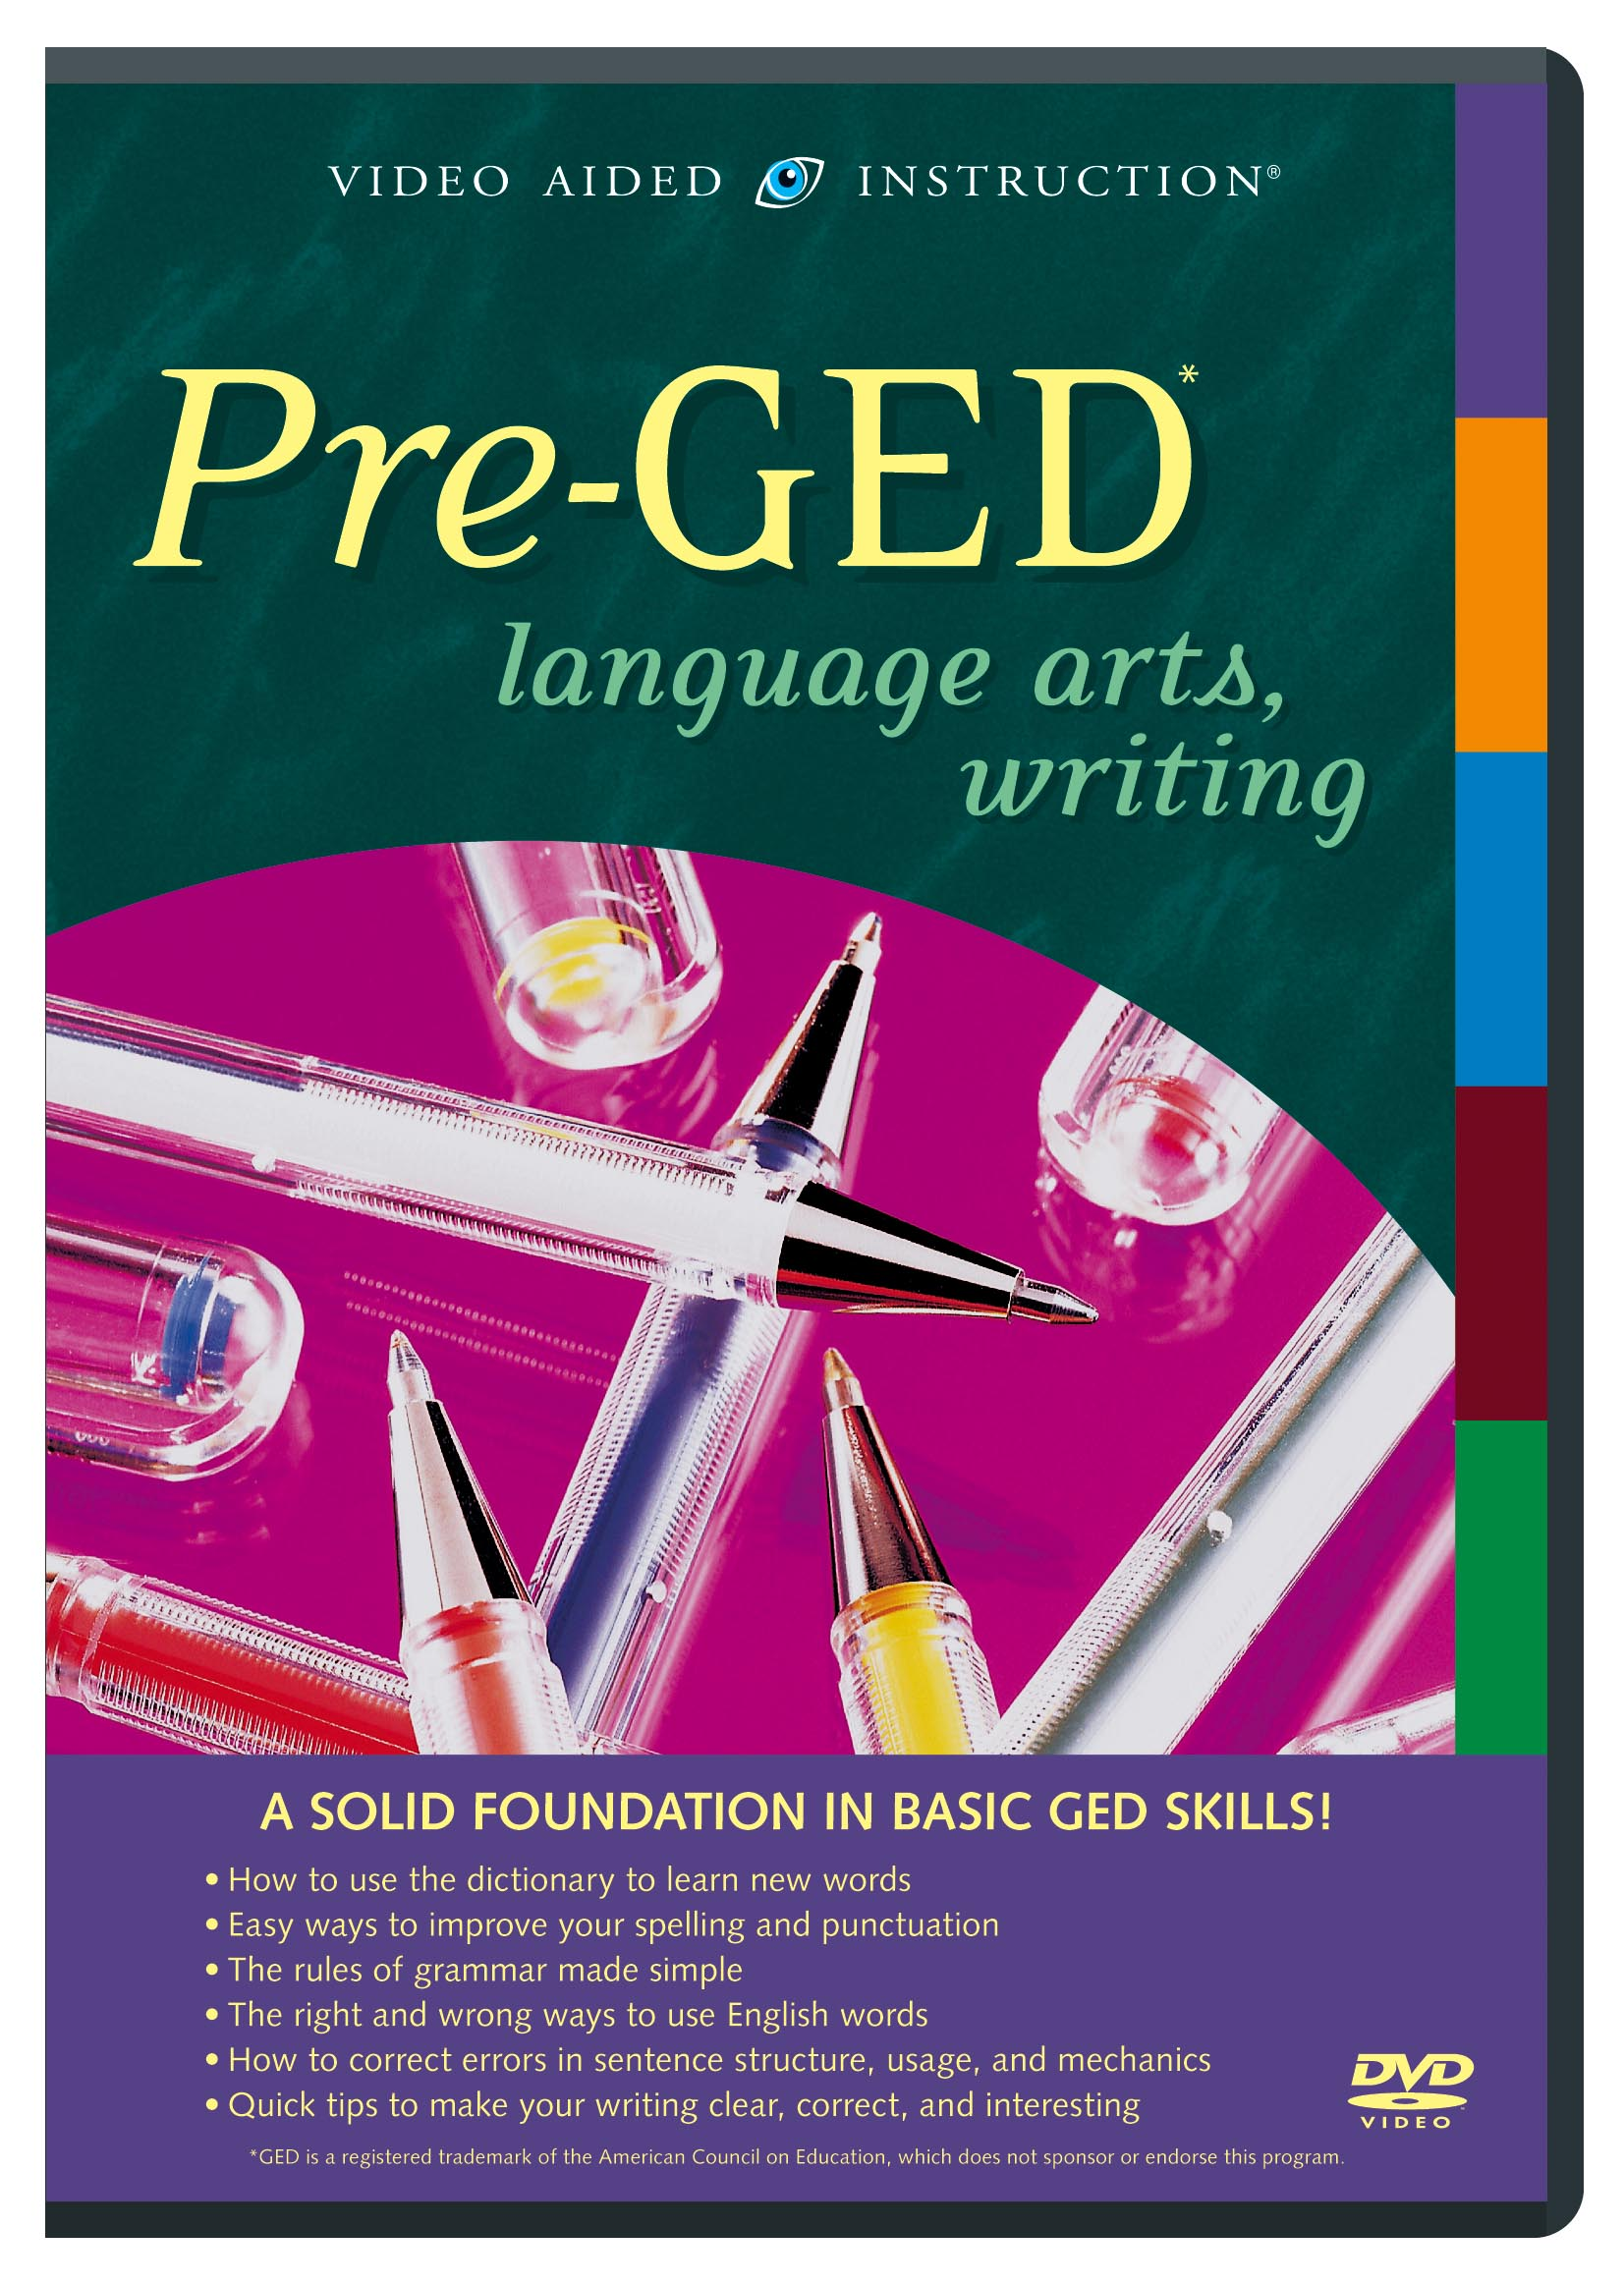 Pre-GED Language Arts, Writing